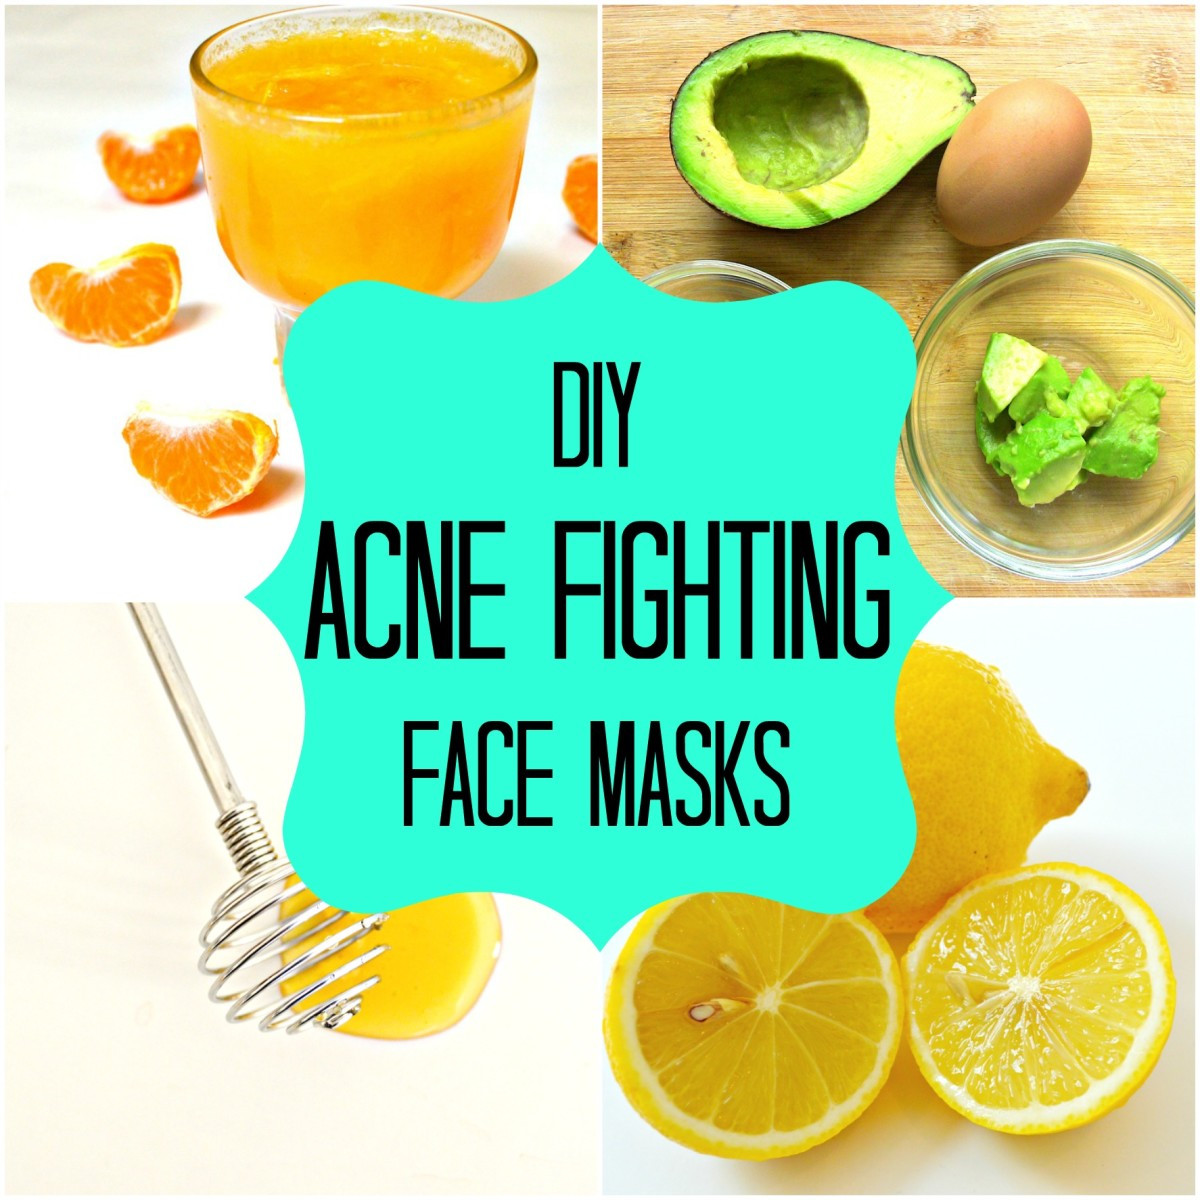 Acne Masks DIY  DIY Homemade Face Masks for Acne How to Stop Pimples